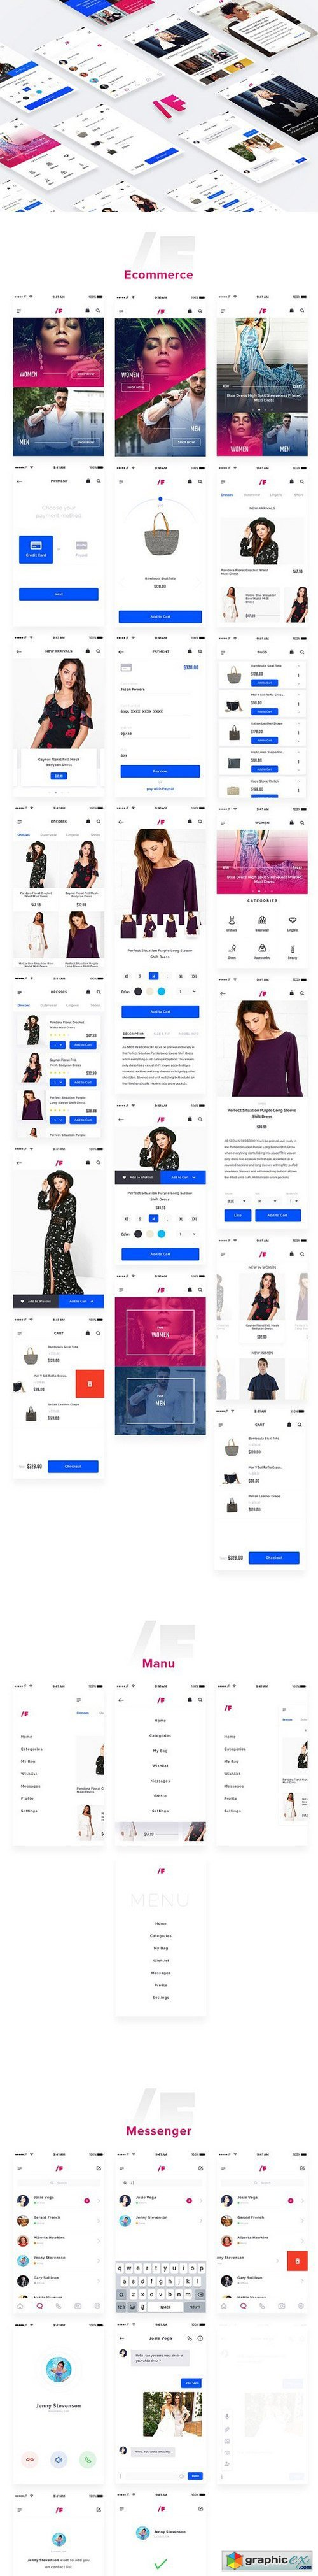 Fashion App UI Kit